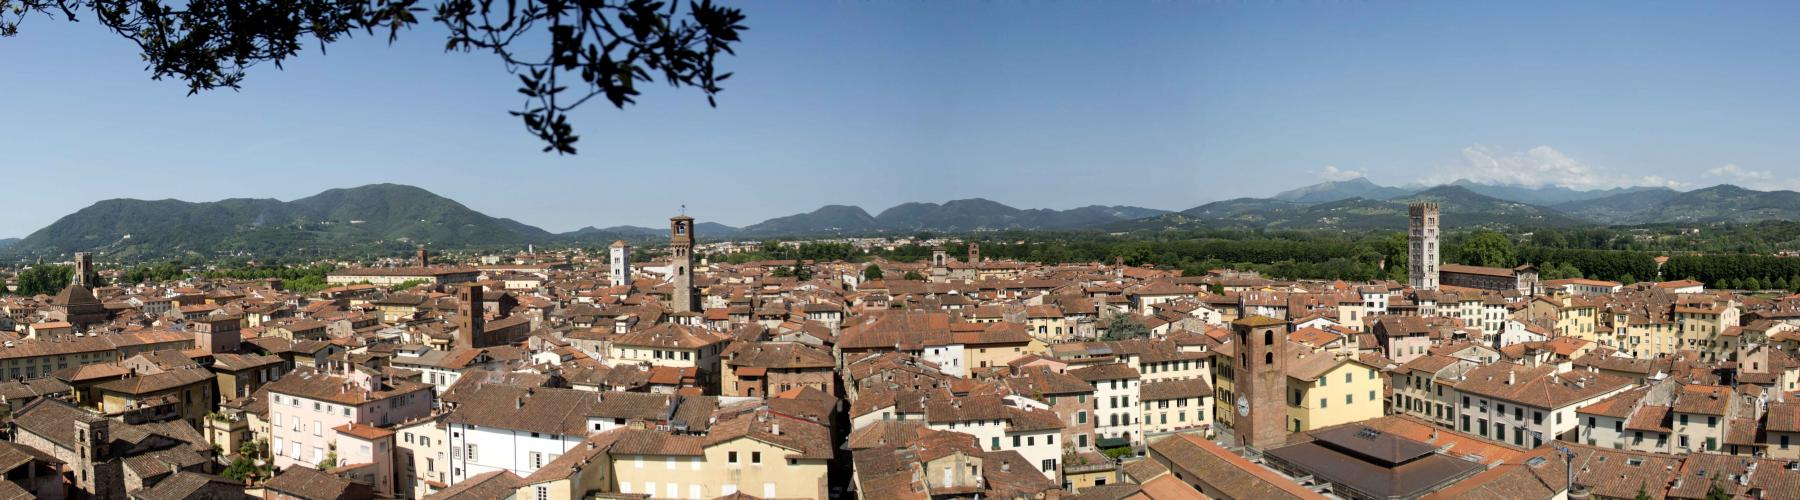 Lucca: panoramica ovest